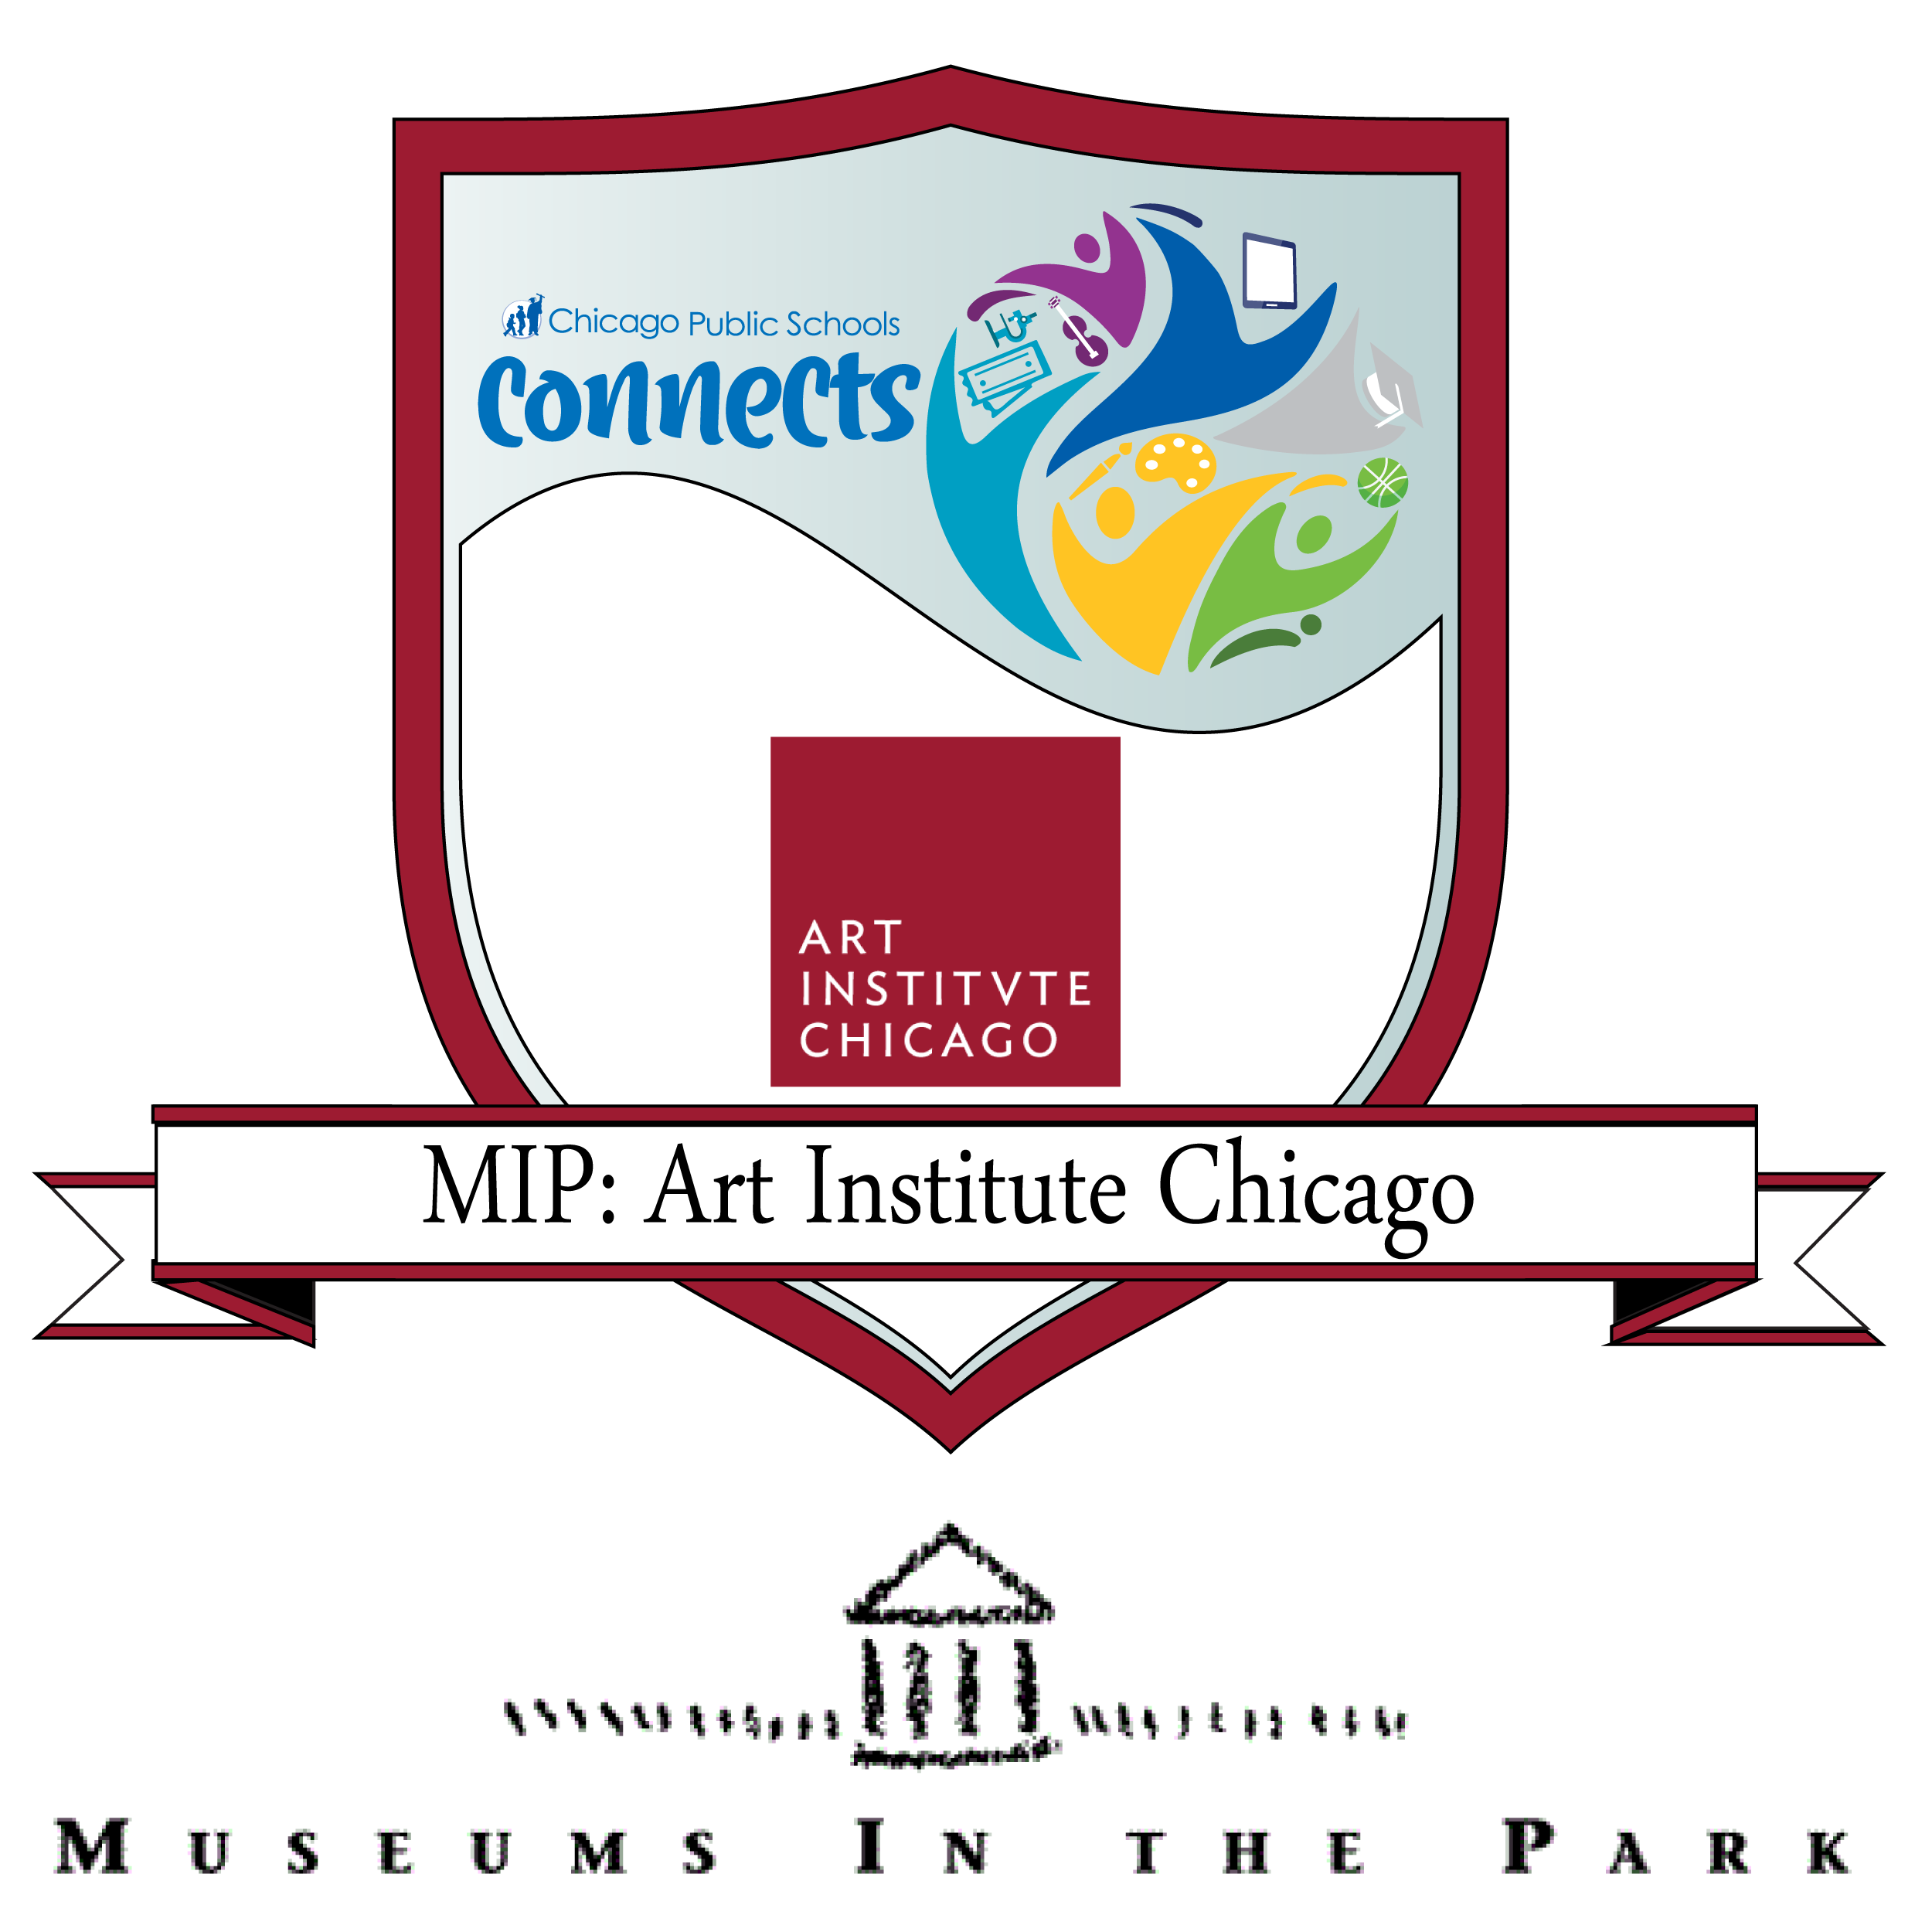 Museums in the Park: Art Institute Chicago